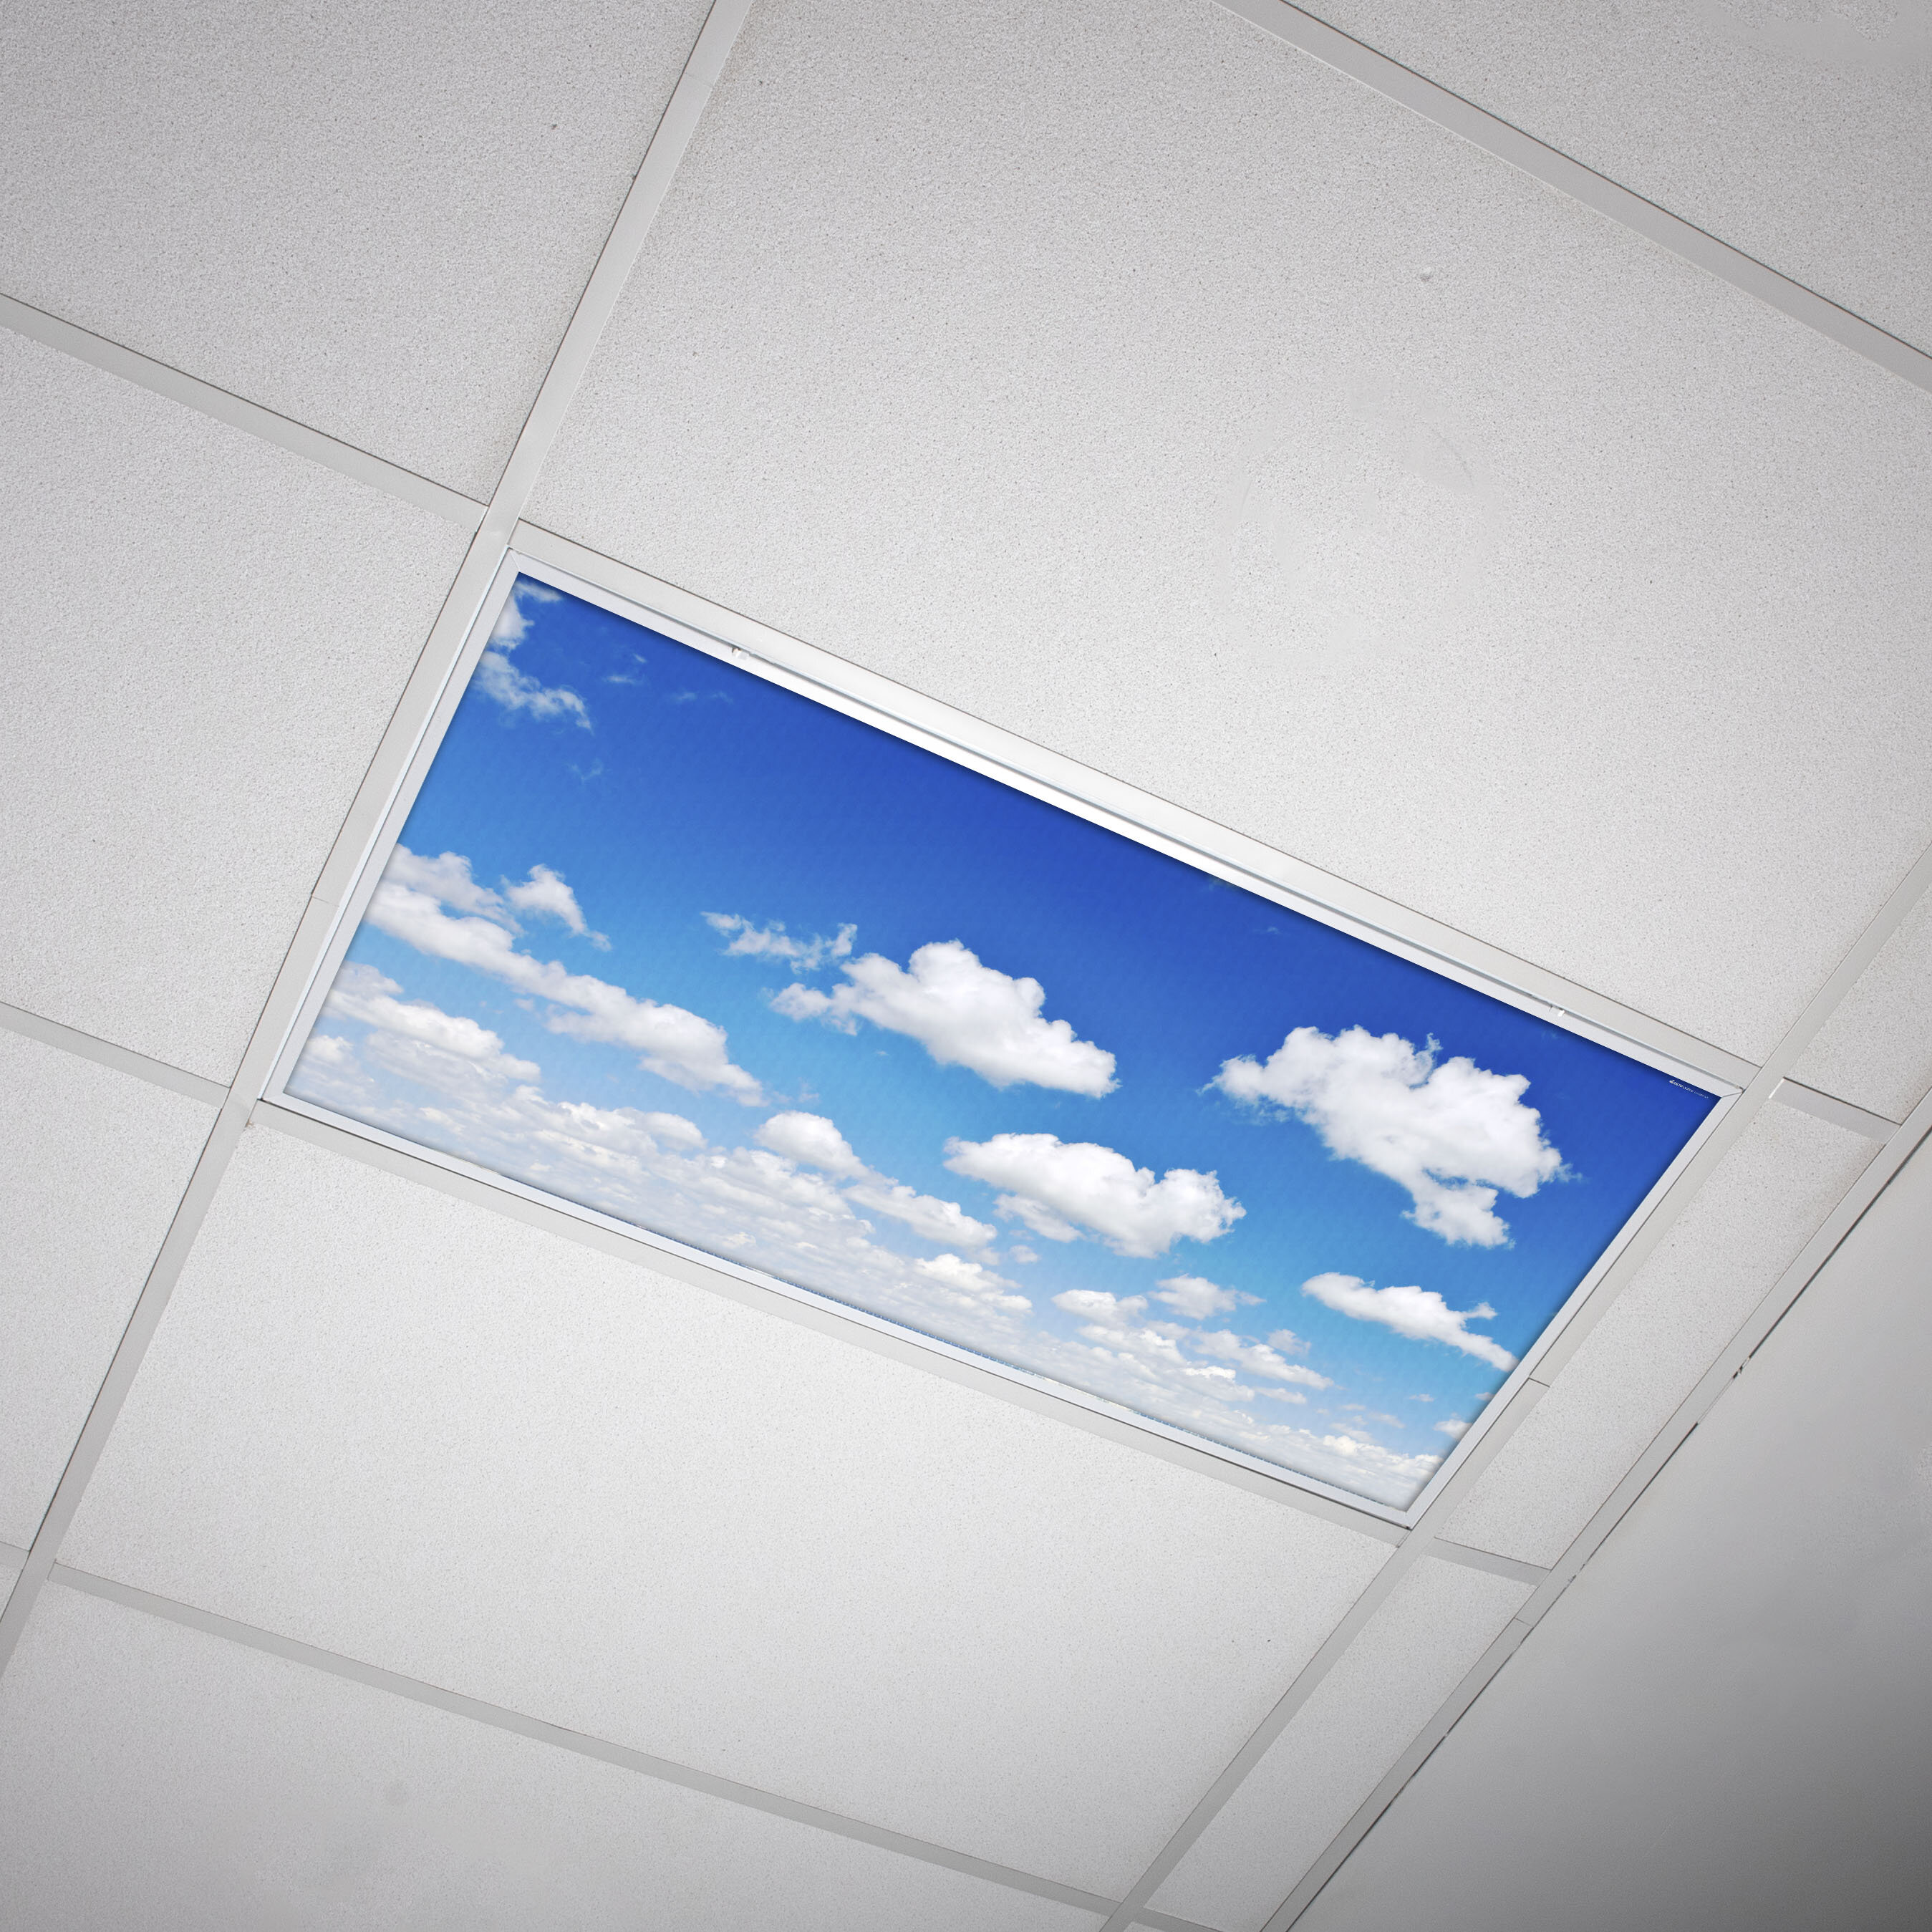 Octo Lights Fluorescent Light Covers Flexible Ceiling Light Diffuser Panels Decorative Clouds For Classrooms And Offices 011 Wayfair Ca